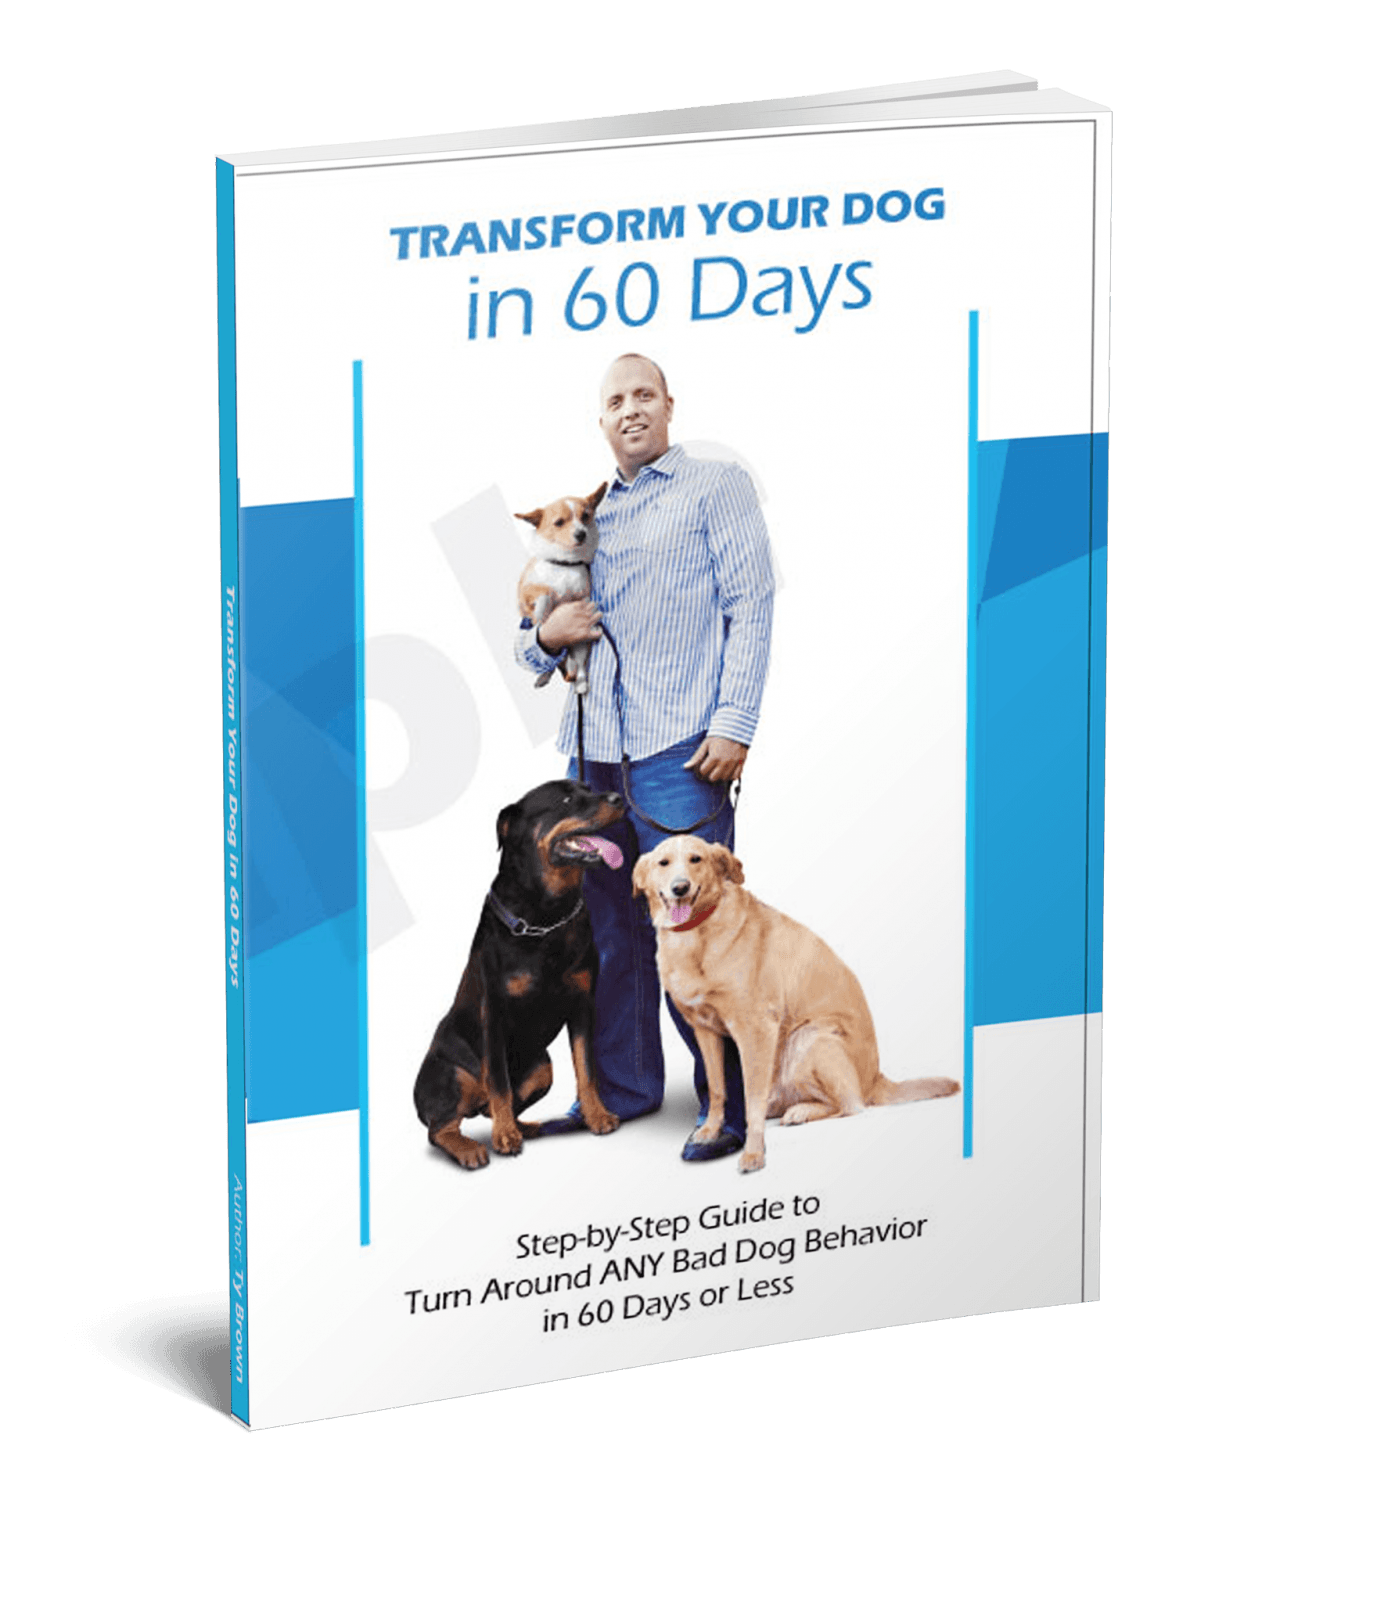 Transform Your Dog in 60 Days